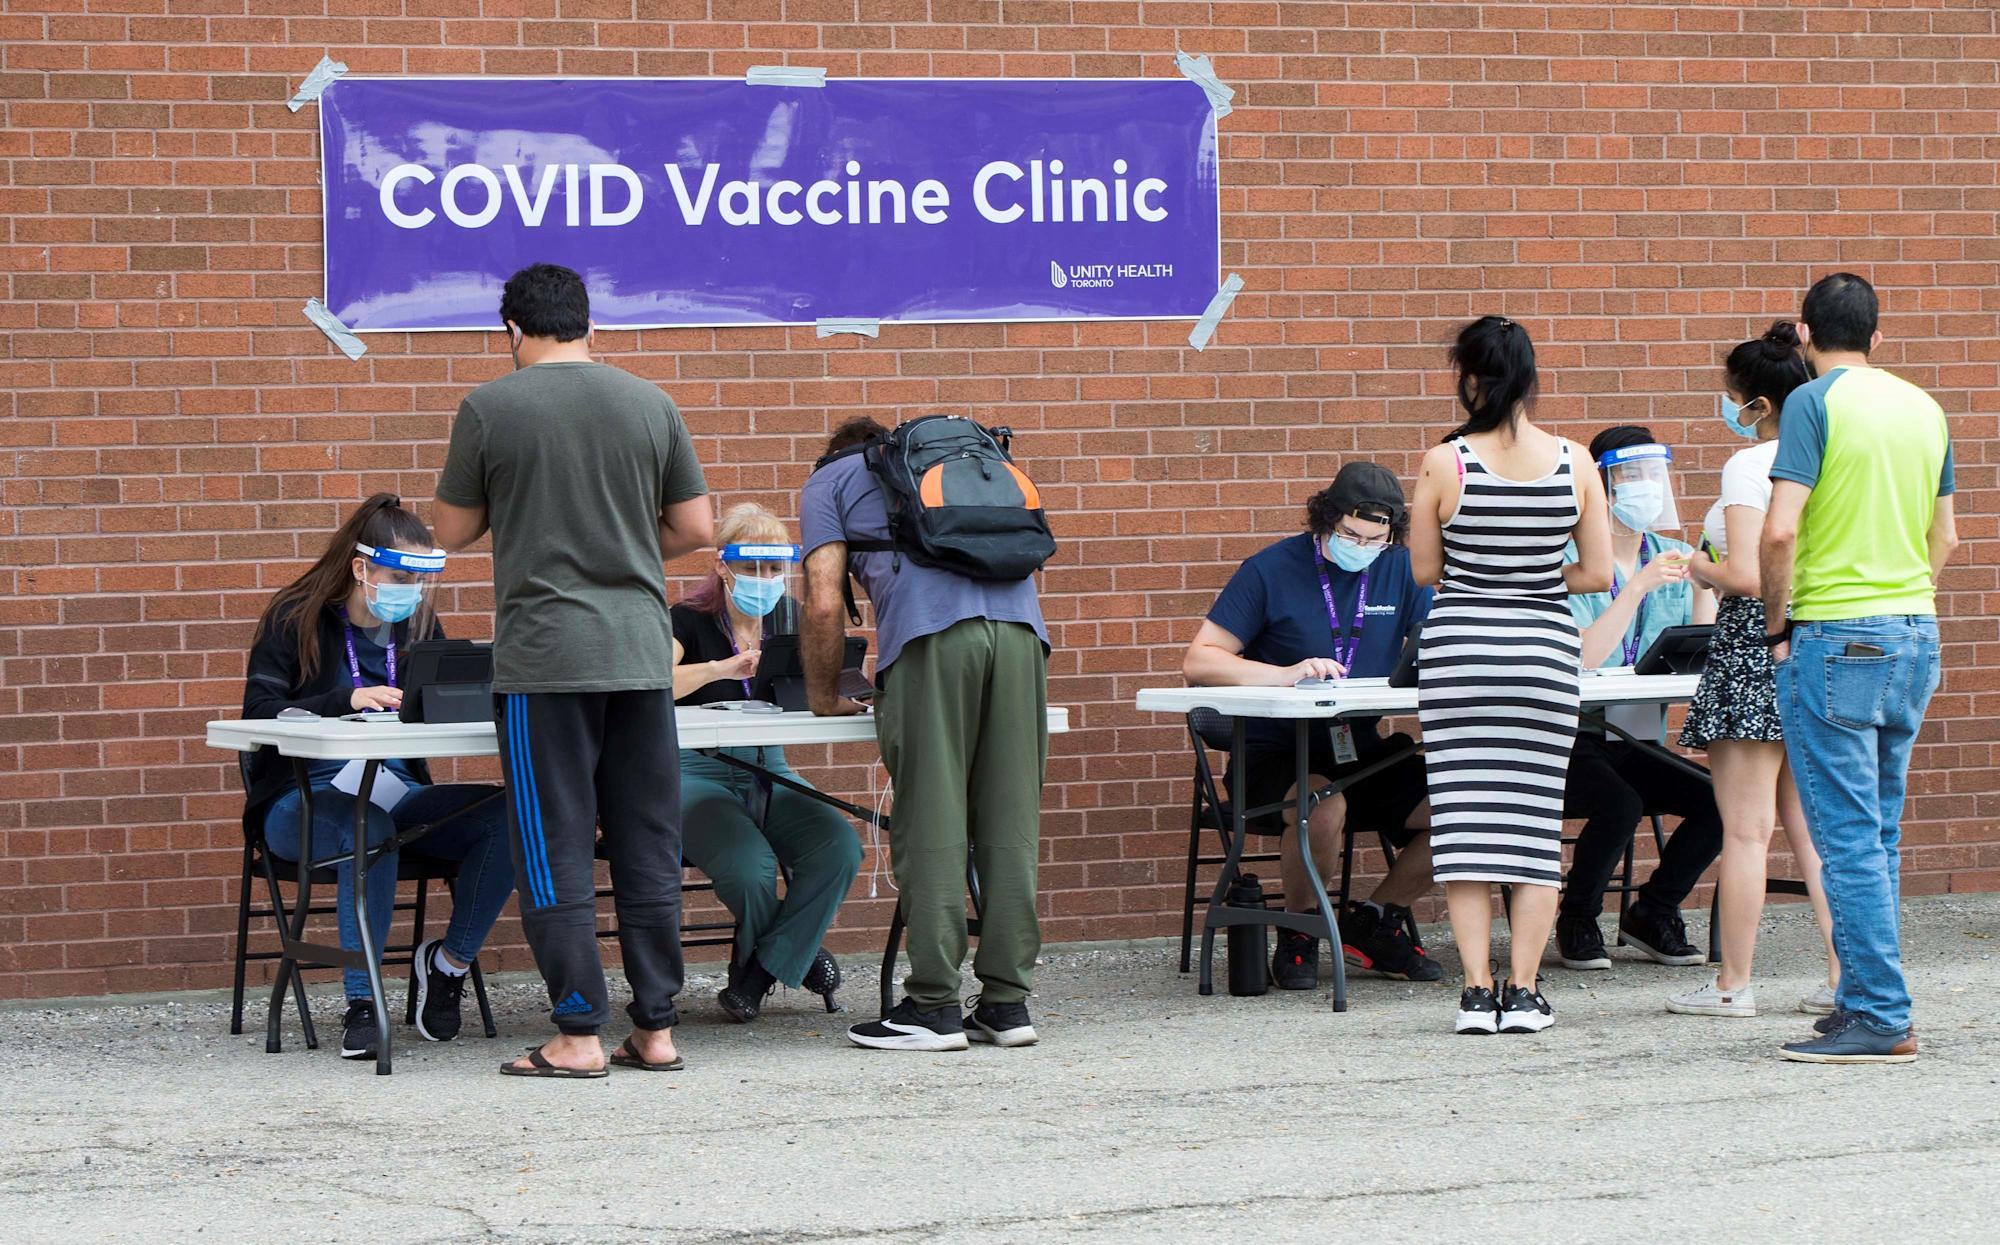 'It's the right choice': Ontario doctors reassure the public on mixing Pfizer, Moderna COVID-19 vaccine doses - Yahoo News